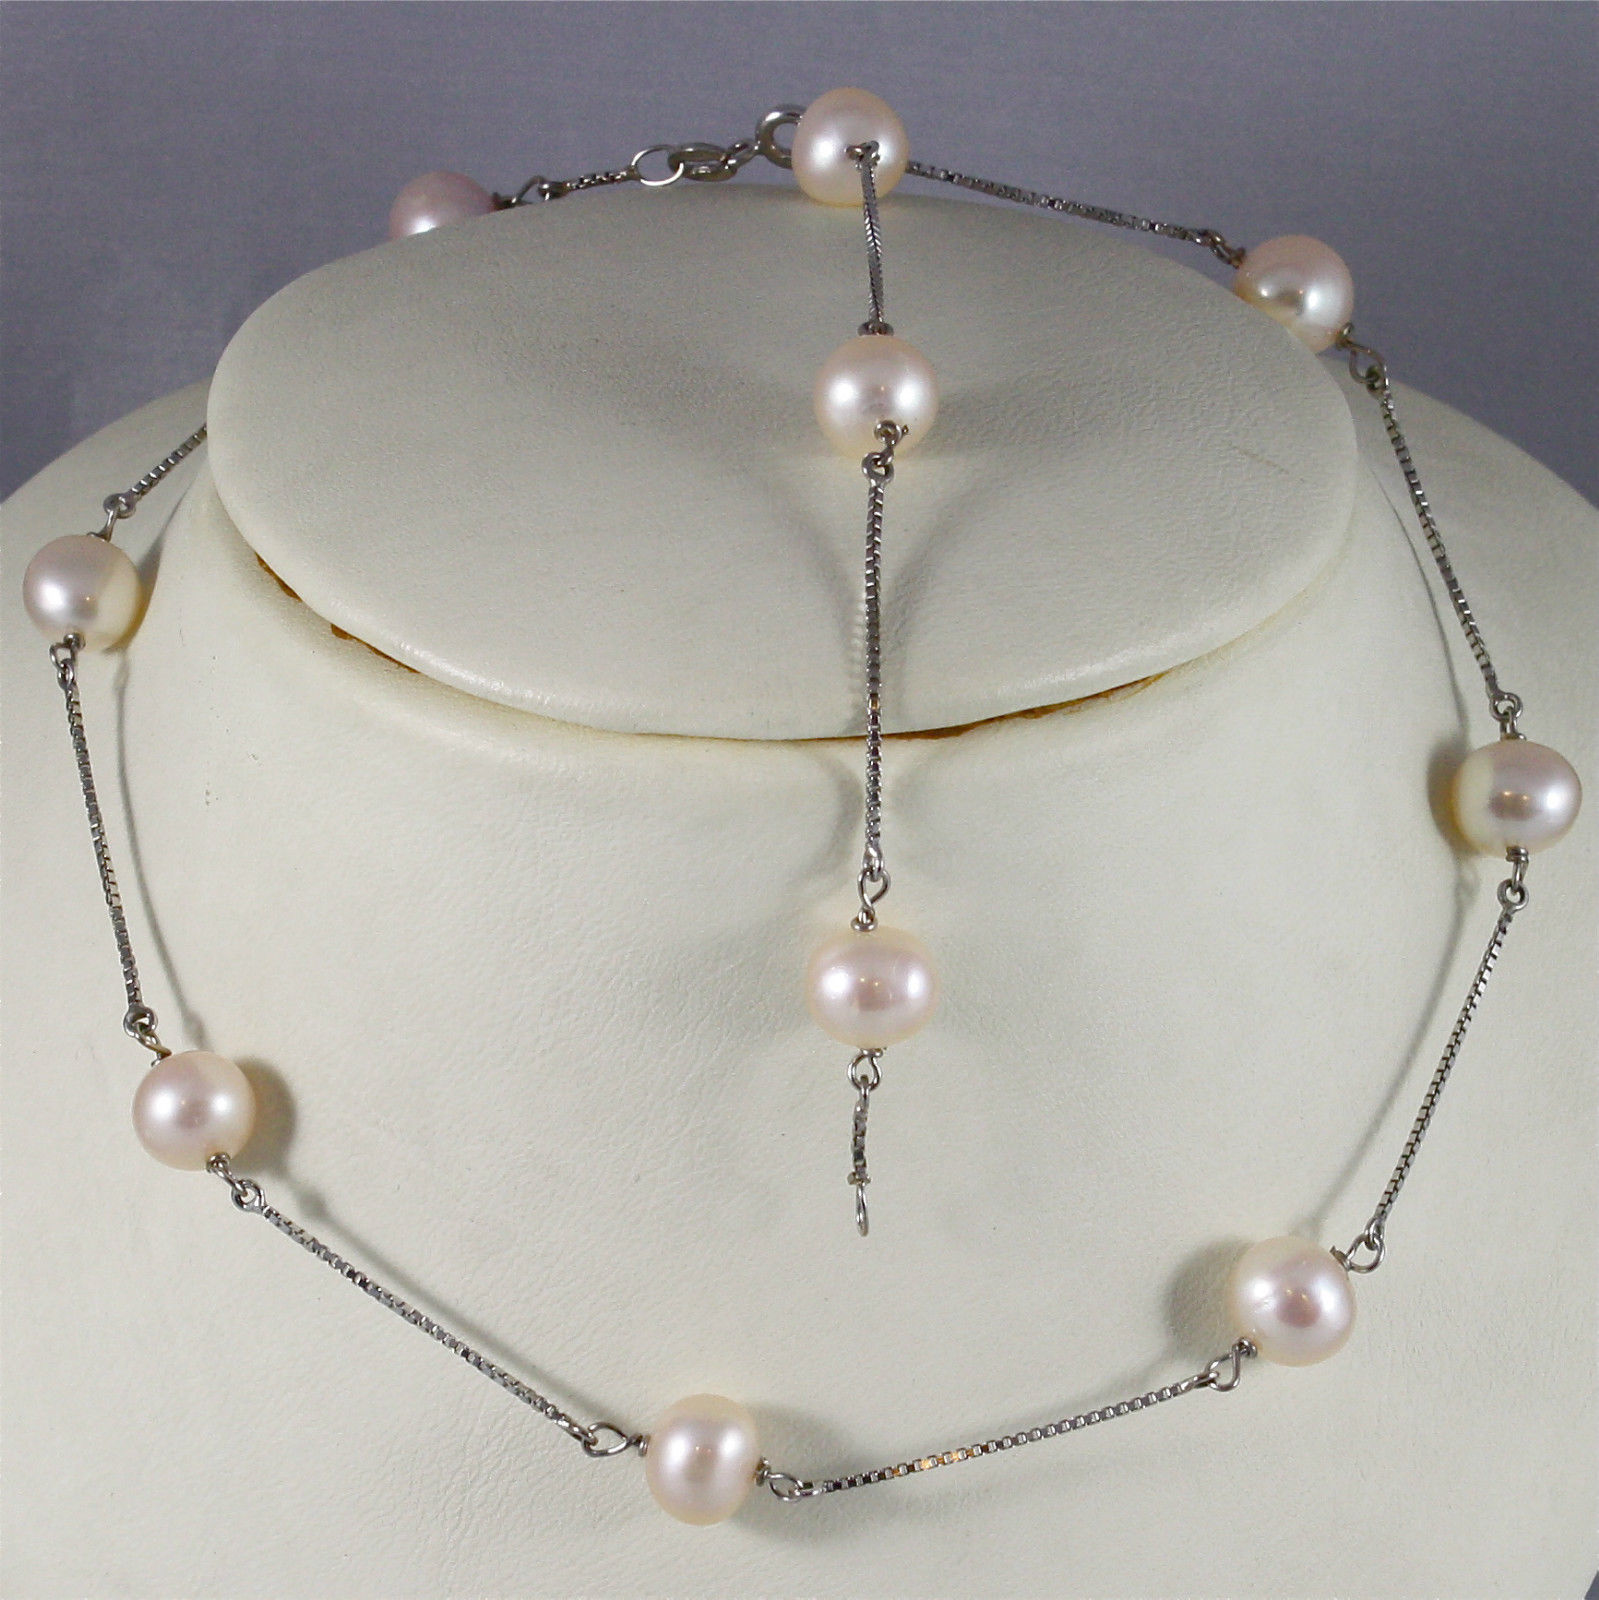 18K WHITE GOLD NECKLACE (44 CM, 17.32 IN) WITH ROSE PEARL, MADE IN ITALY